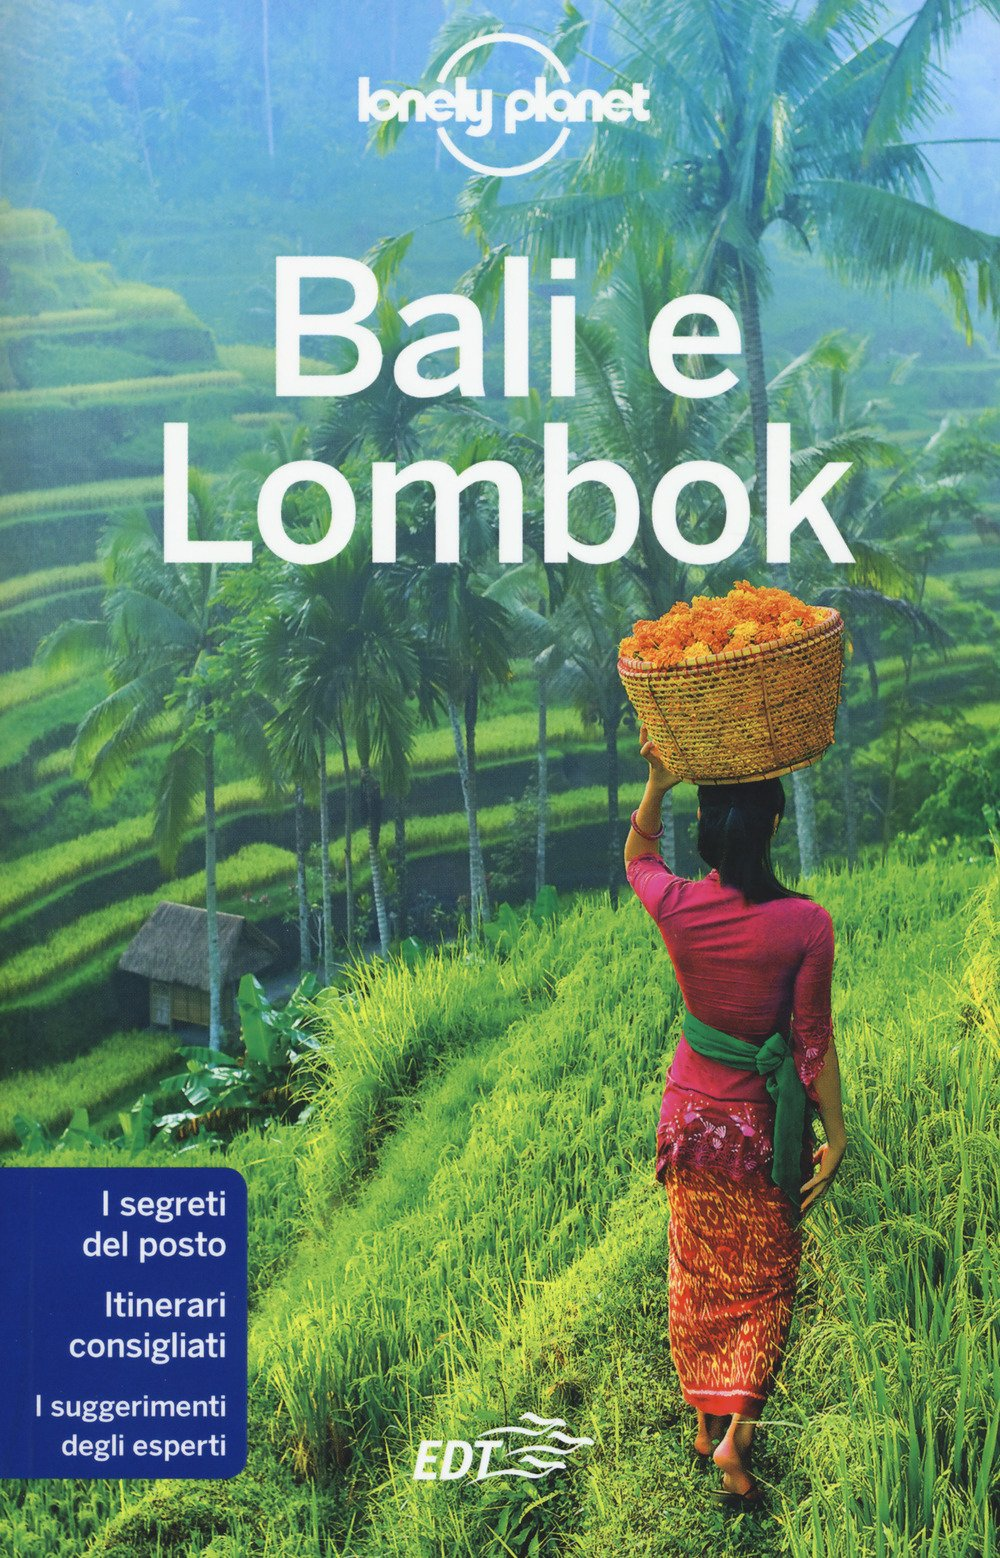 Guida di Bali su Amazon. Itinerario in Indonesia: da Java alle Gili.